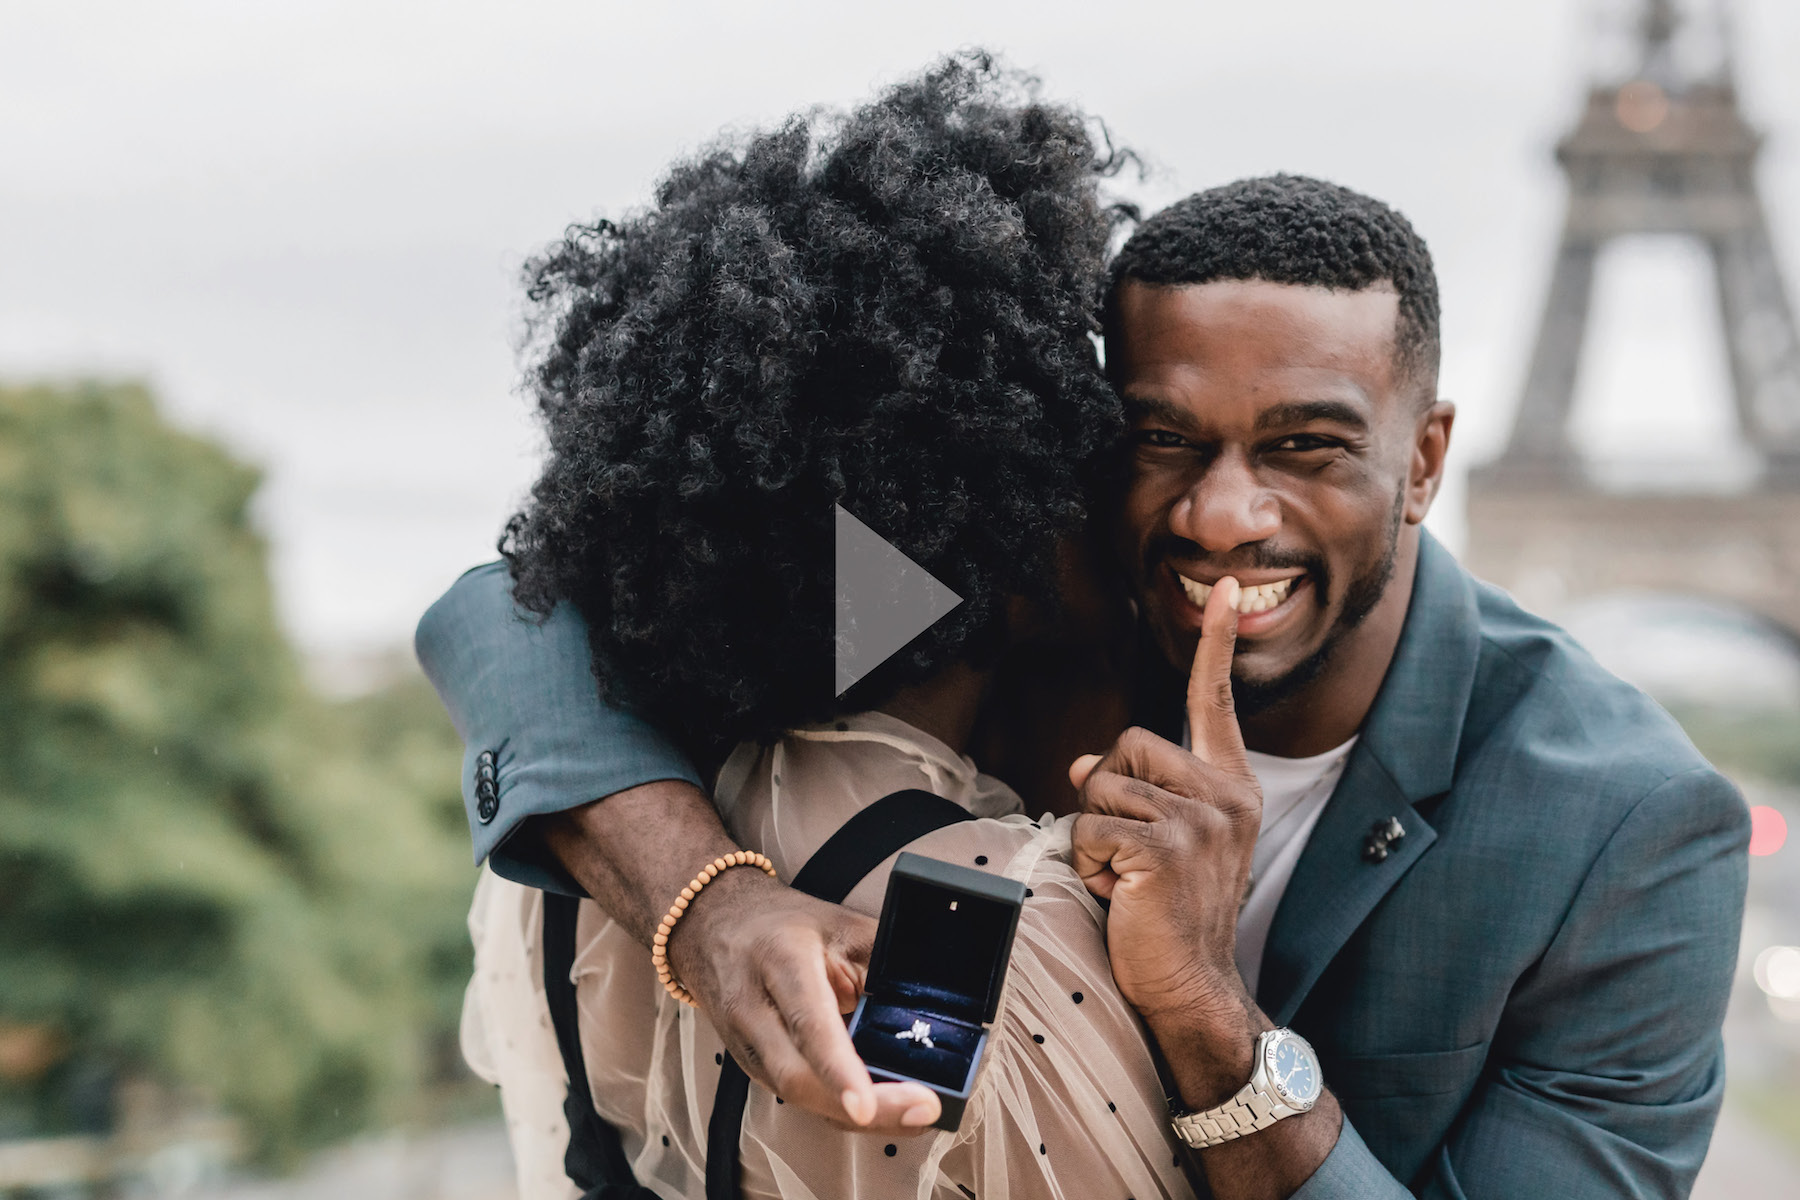 proposal videos from around the world captured by Flytographer